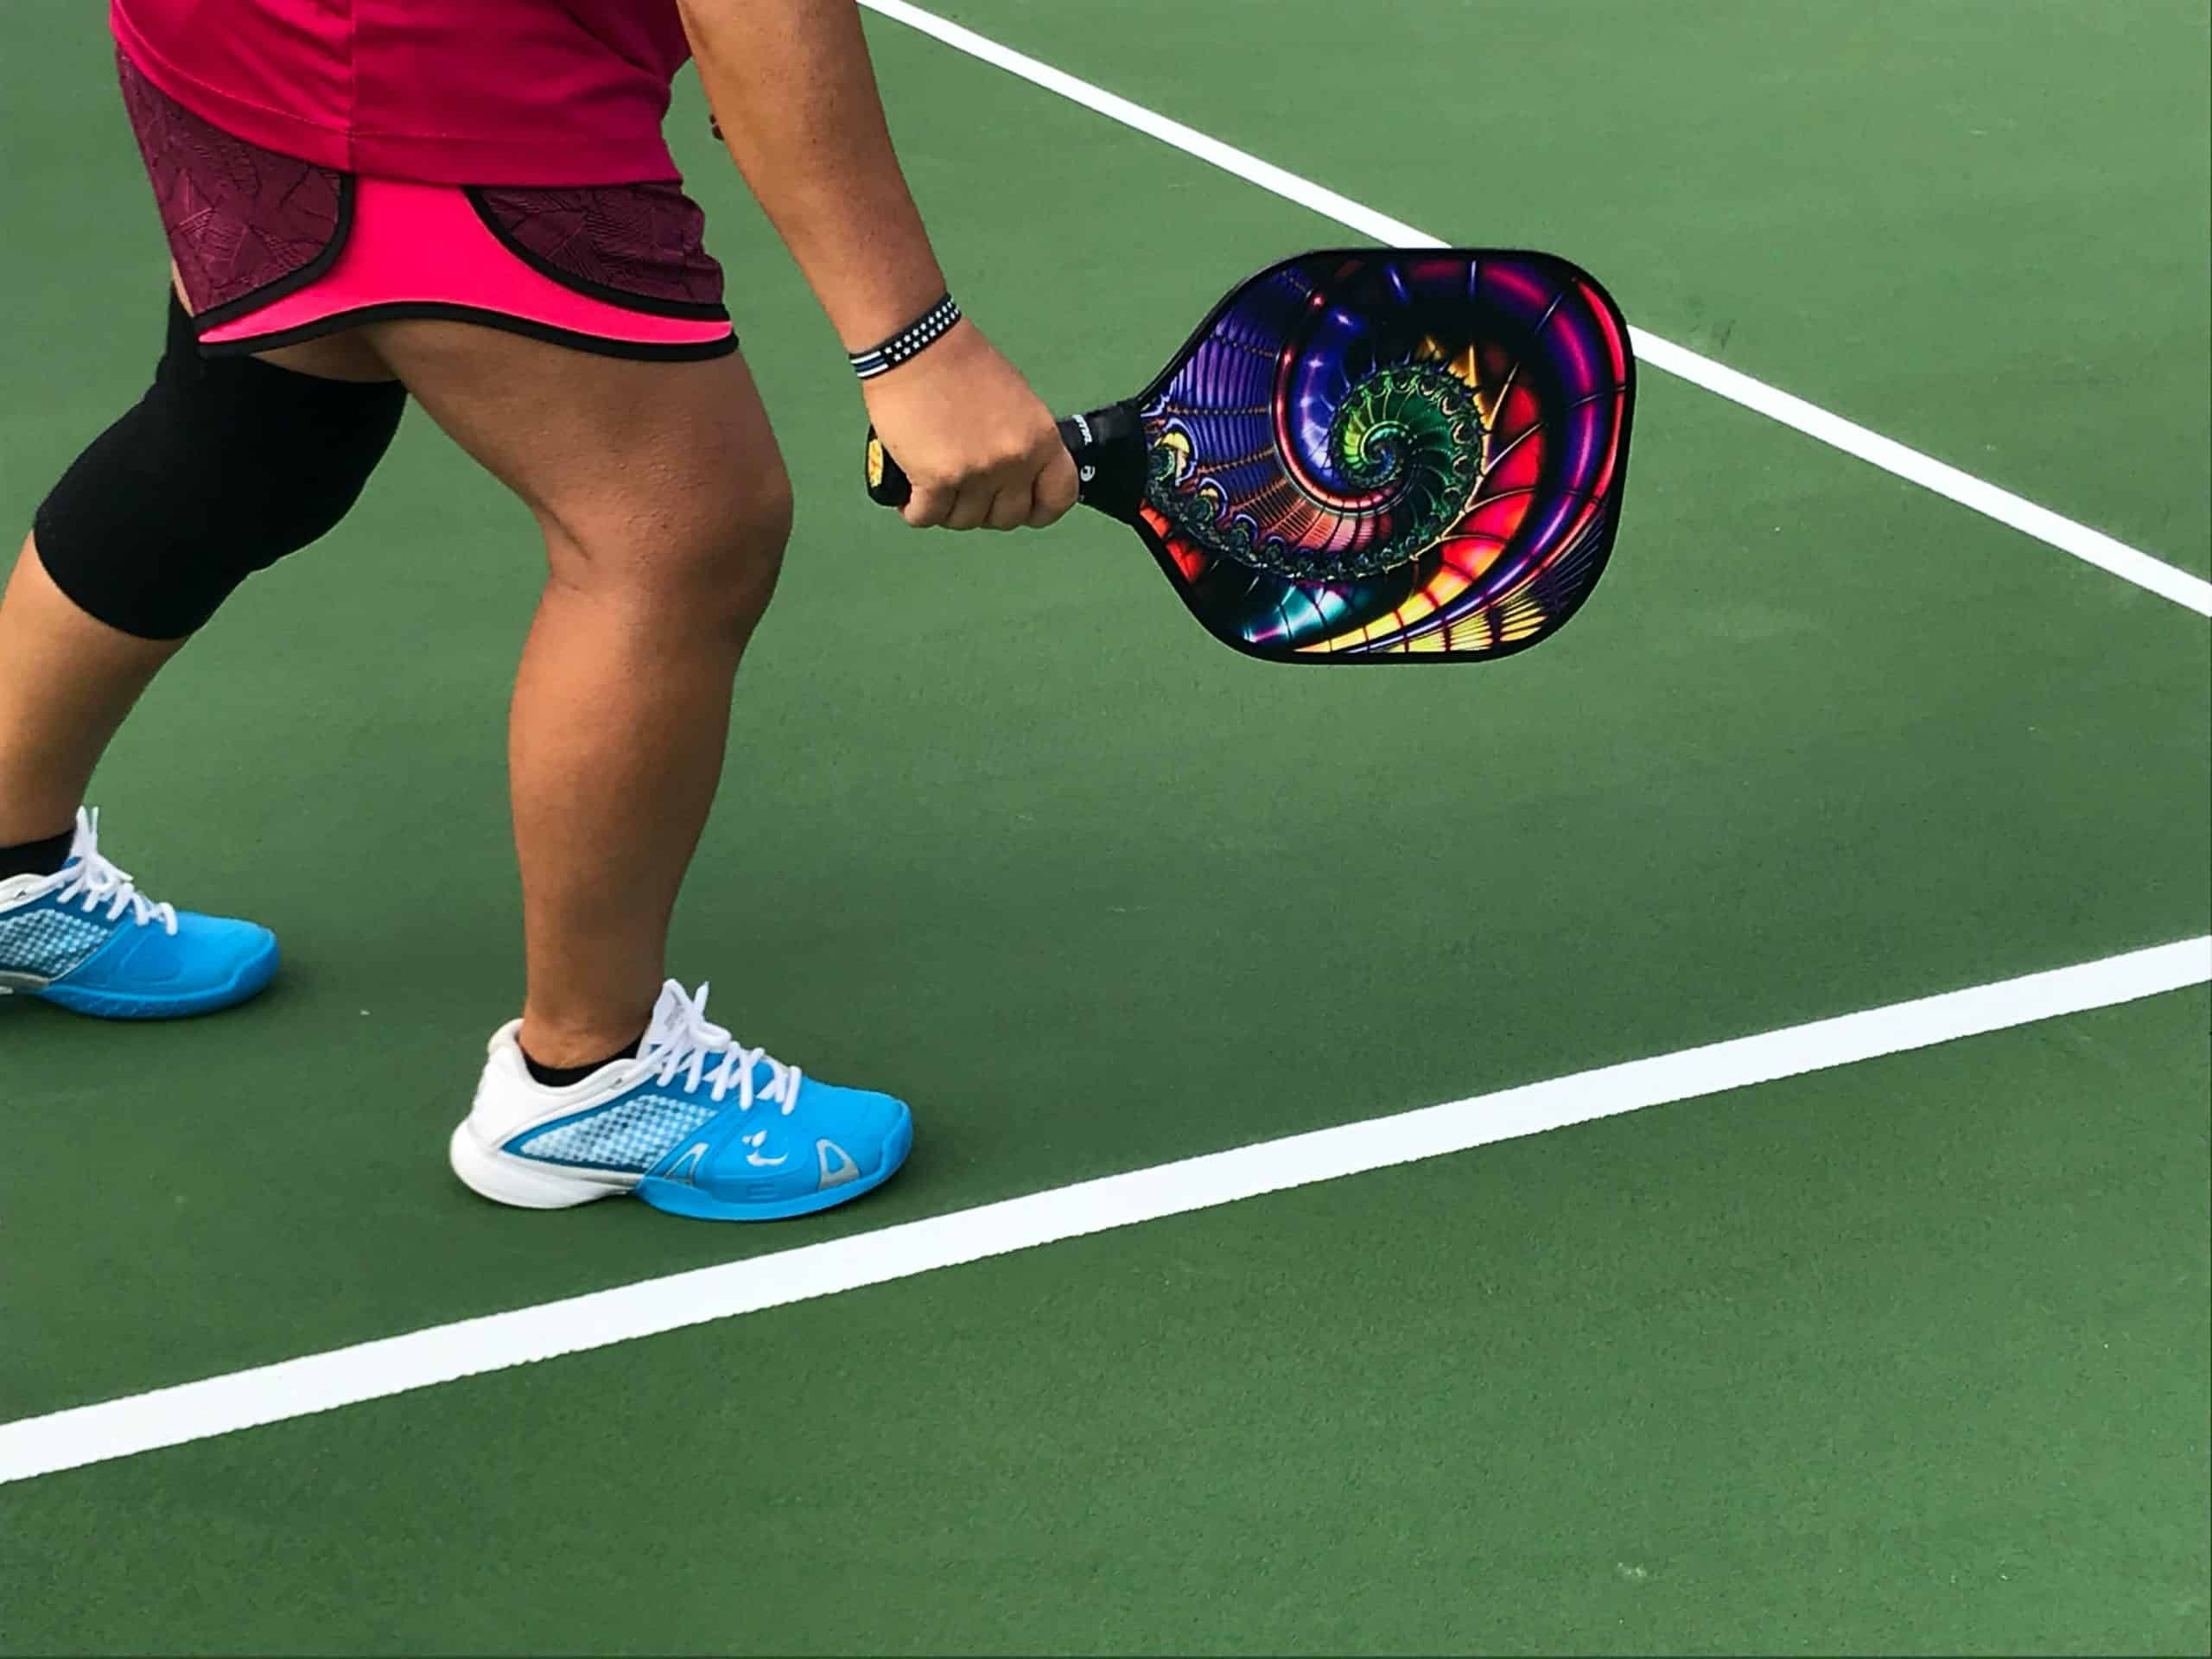 how to dink pickleball